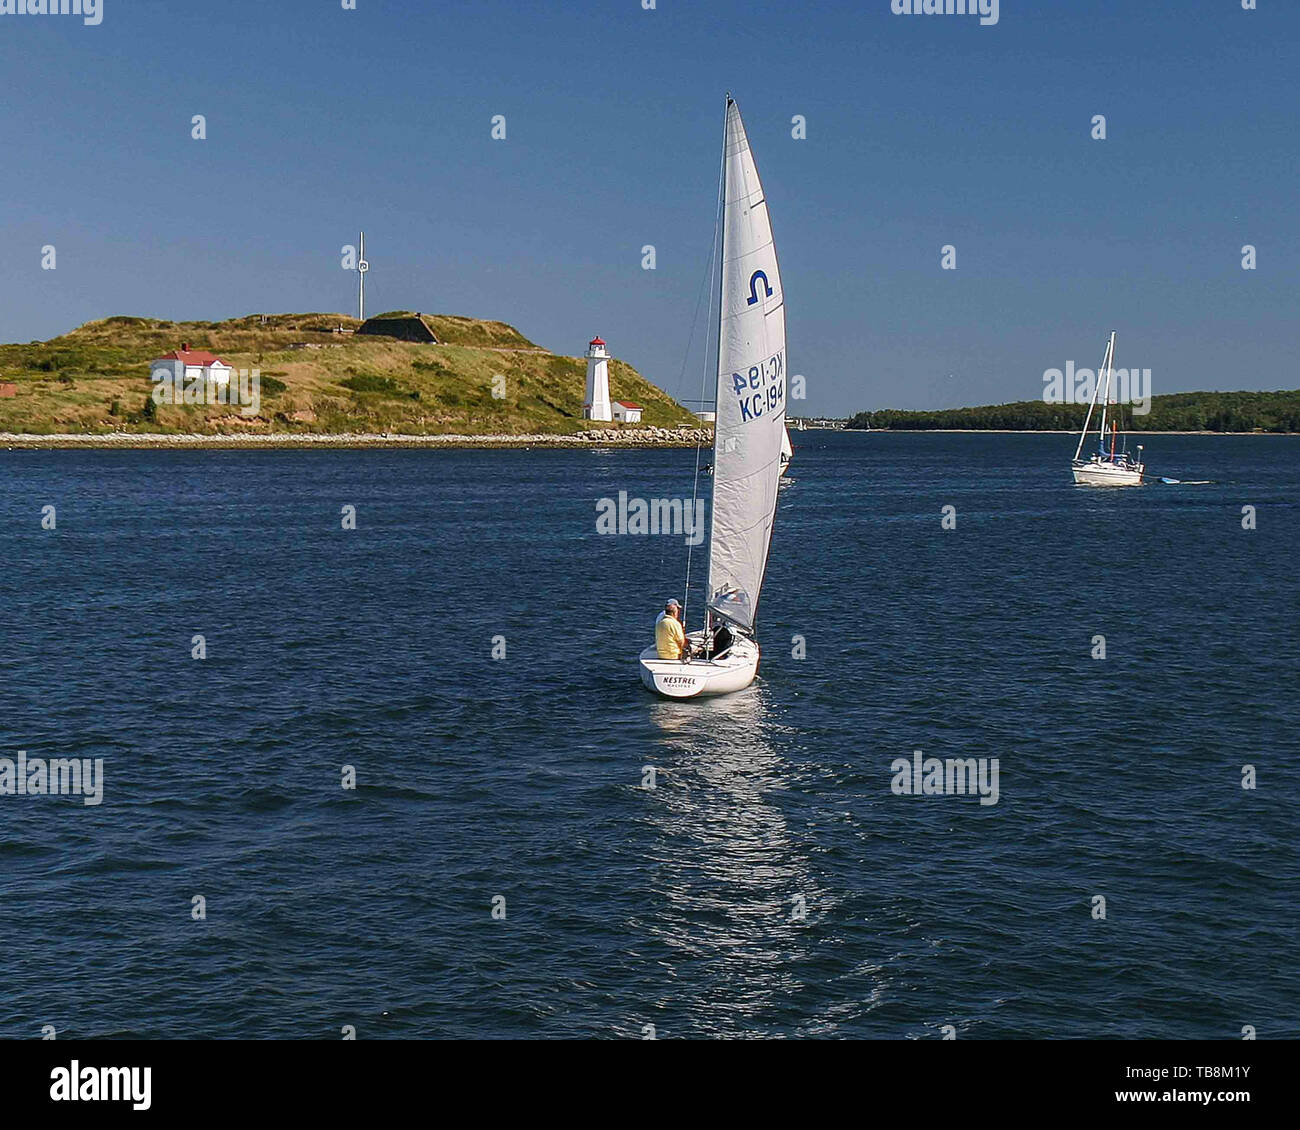 Halifax, Nova Scotia, Canada. 5th Sep, 2005. Sailing in Halifax Harbor, near Georges Island and the lighthouse. A favorite pastime for Nova Scotians and tourists. Credit: Arnold Drapkin/ZUMA Wire/Alamy Live News - Stock Image